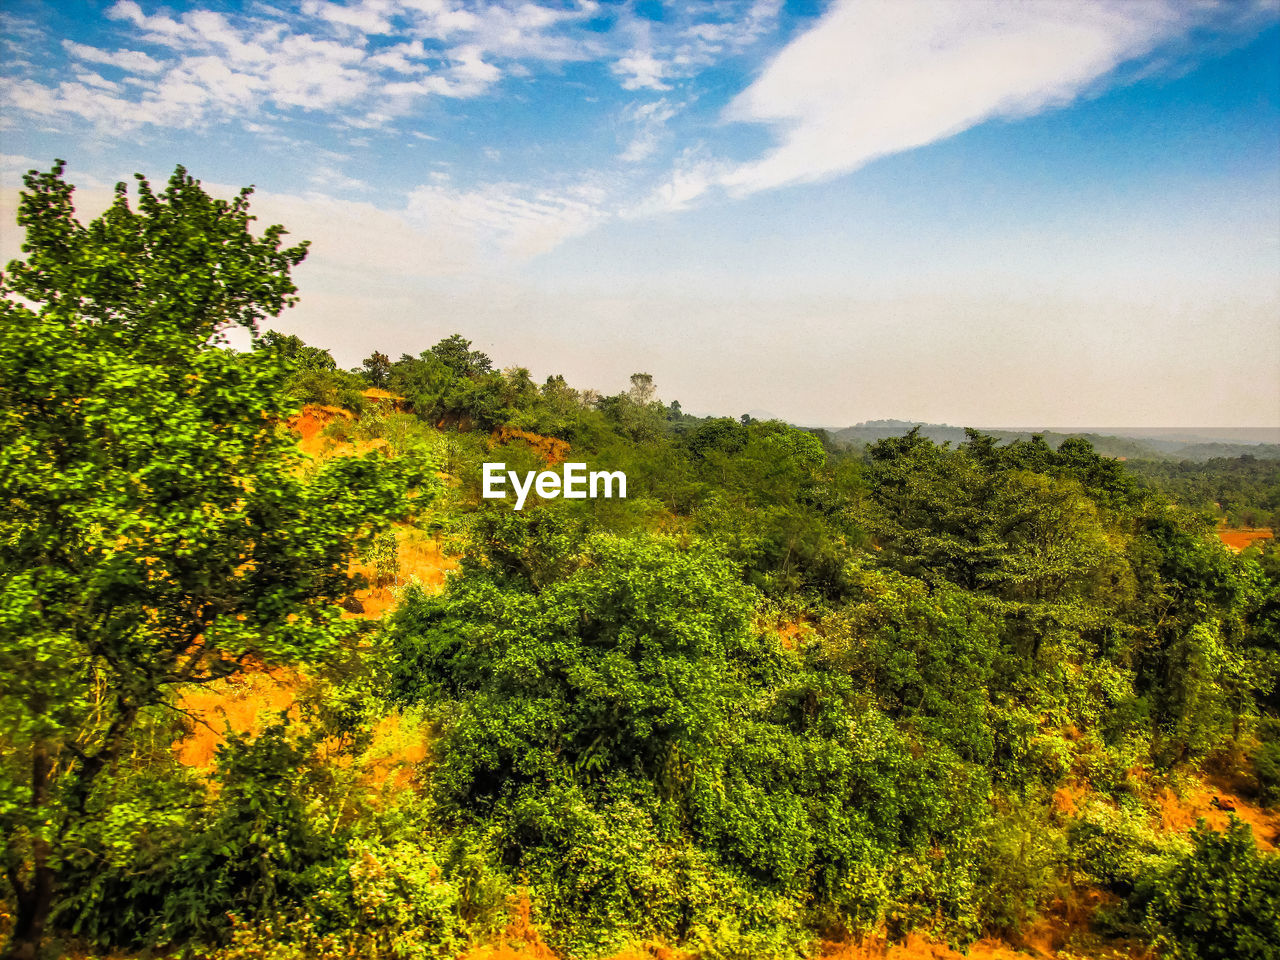 tree, nature, growth, beauty in nature, scenics, no people, sky, tranquility, plant, forest, outdoors, landscape, day